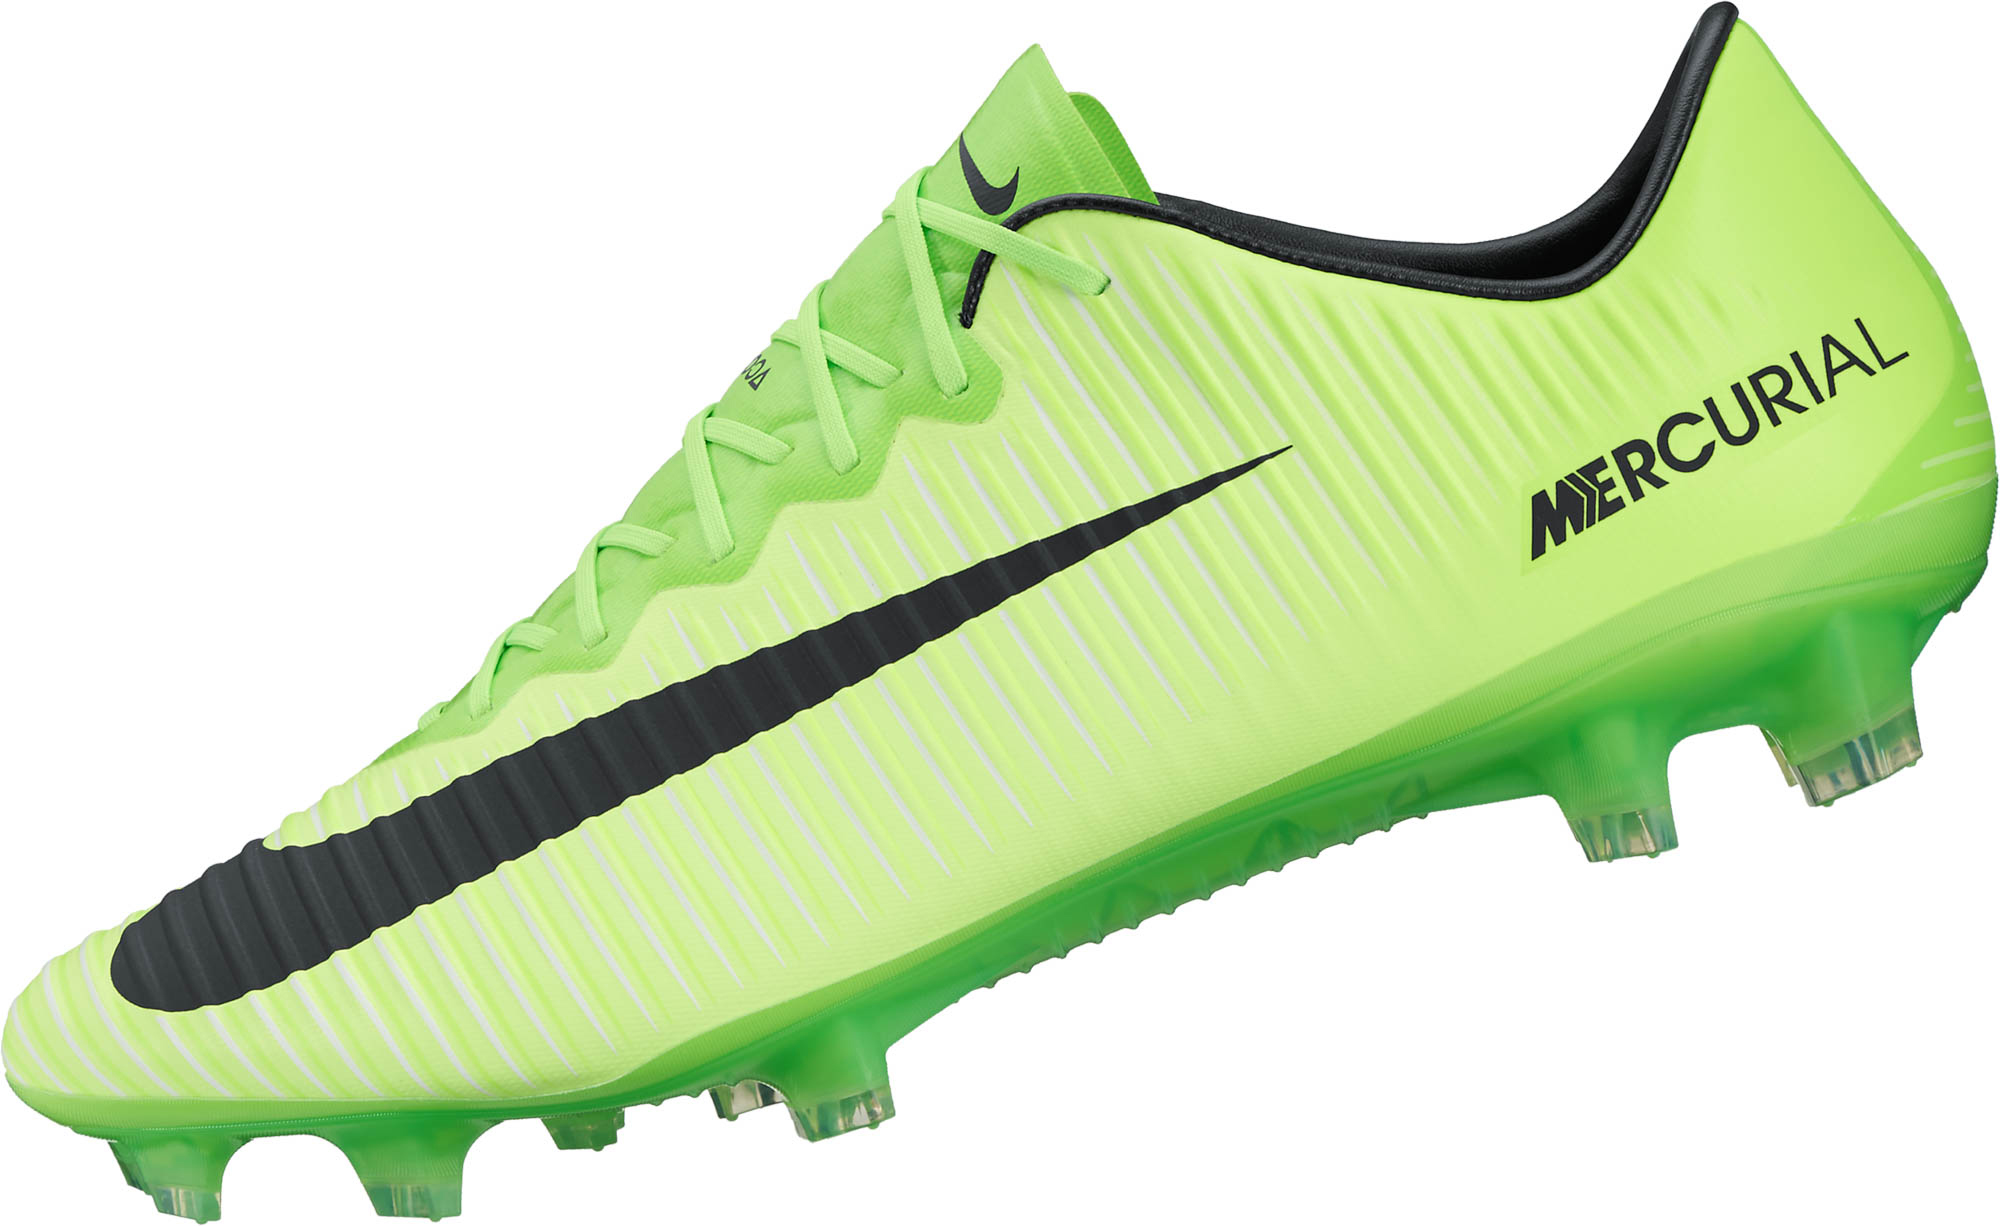 nike mercurial vapor xi fg mercurial soccer cleats. Black Bedroom Furniture Sets. Home Design Ideas